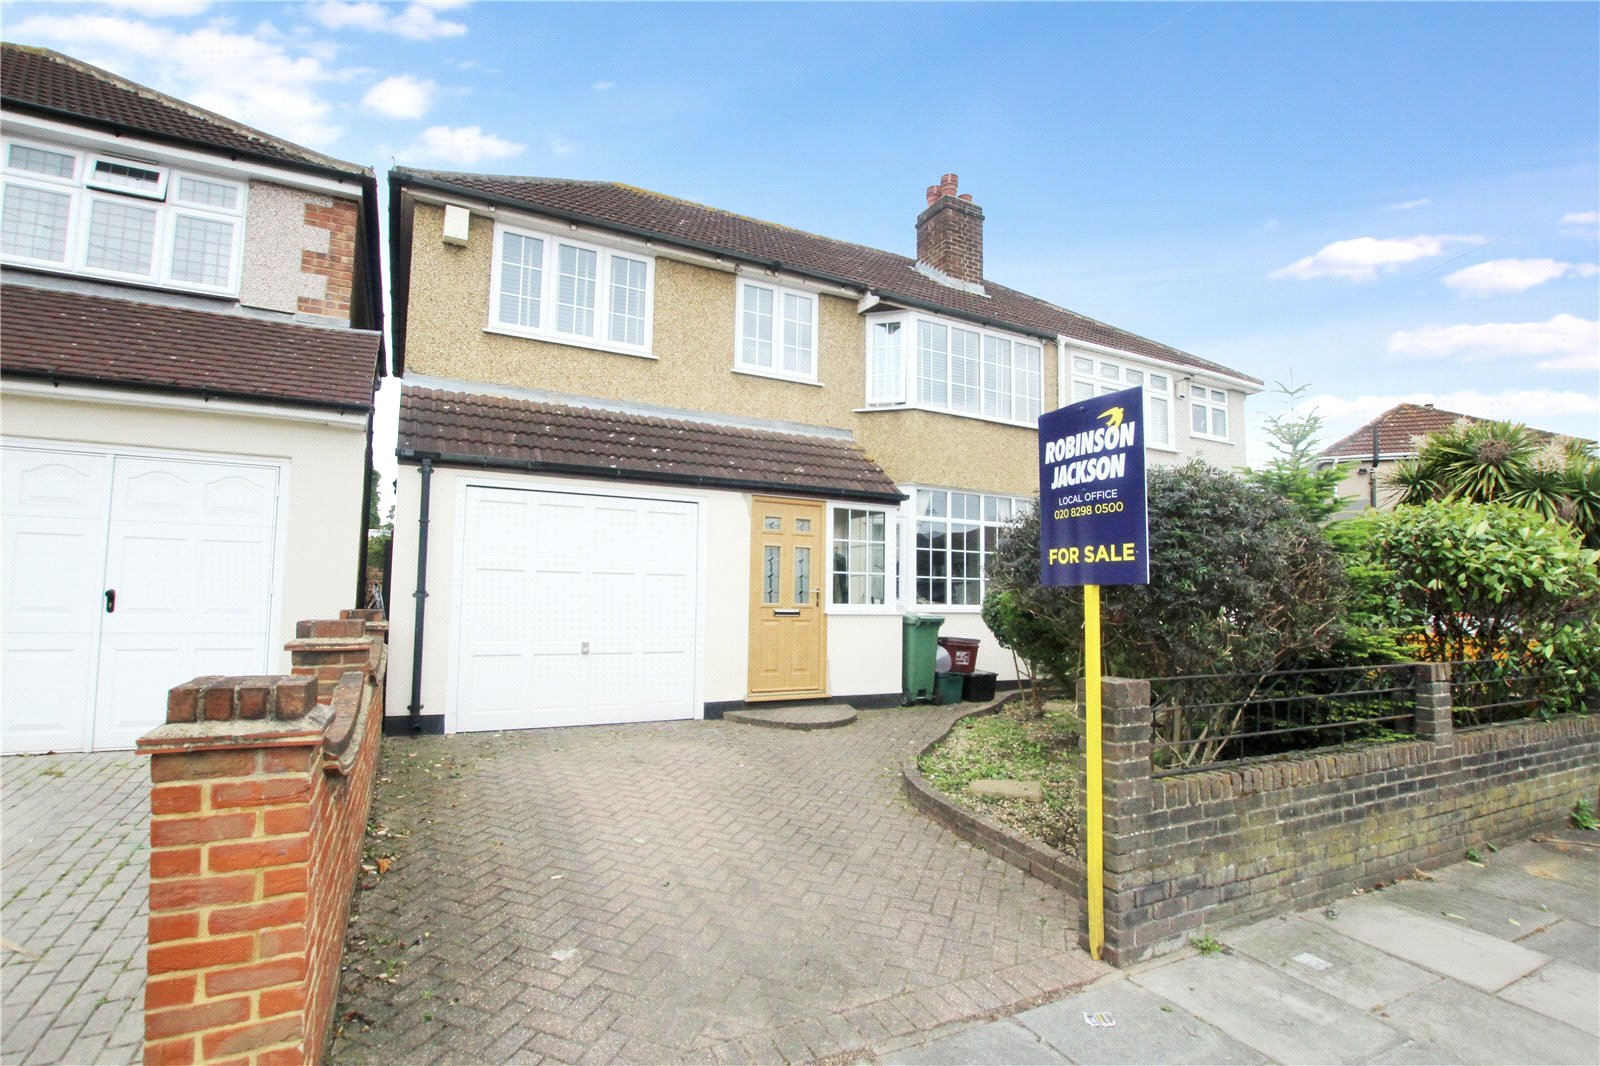 Merlin Road, Welling, Kent, DA16